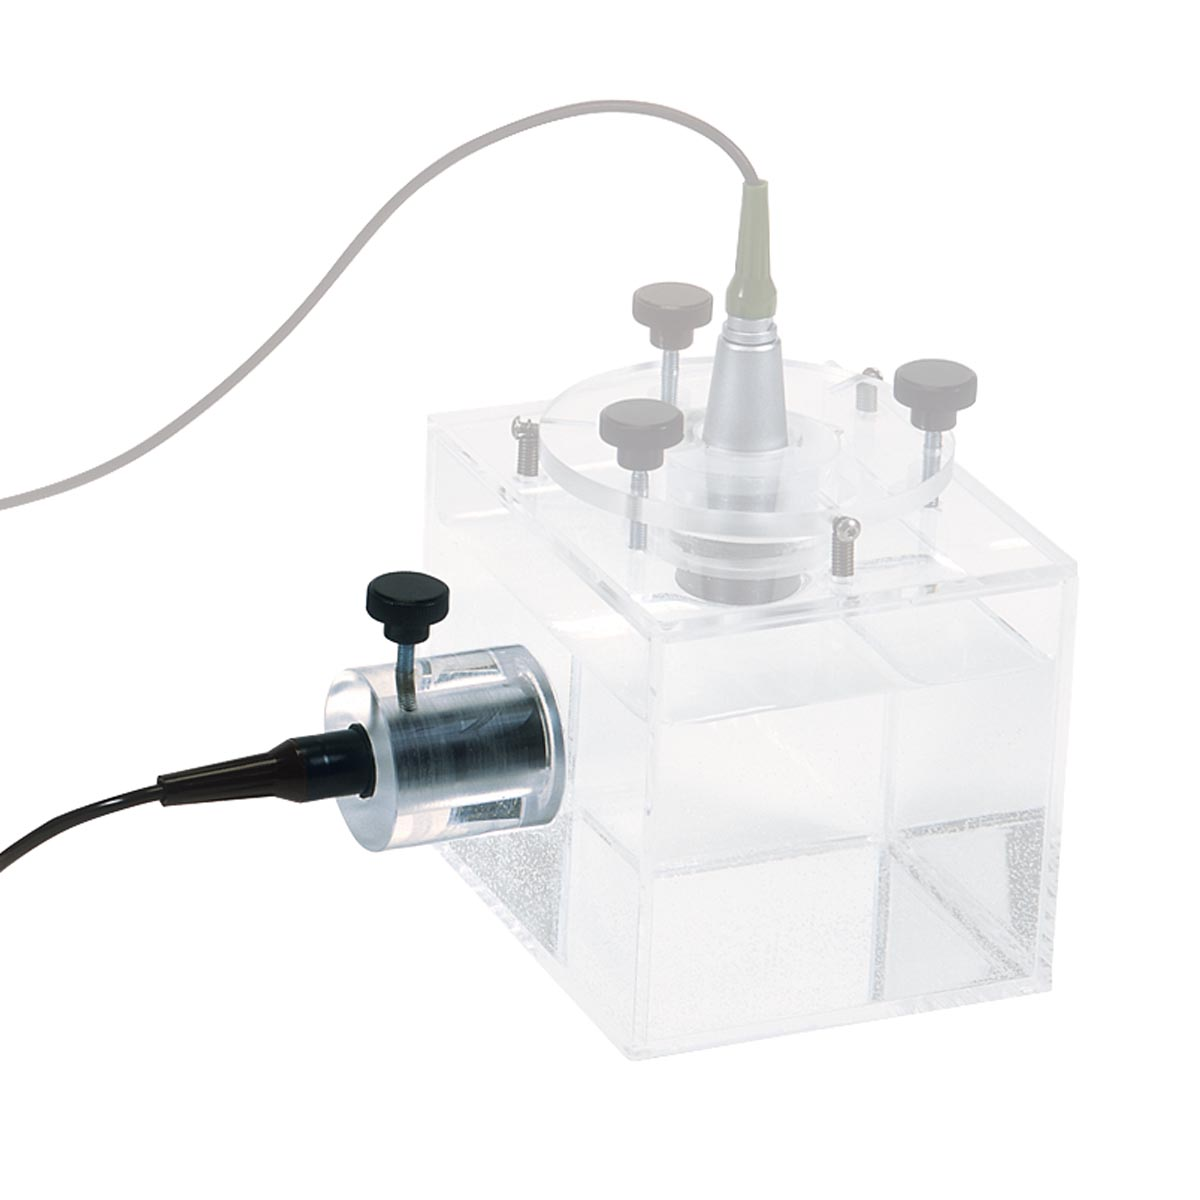 Laser Diode for Debye-Sears Effect, Red - 1002577 - U10007 ...